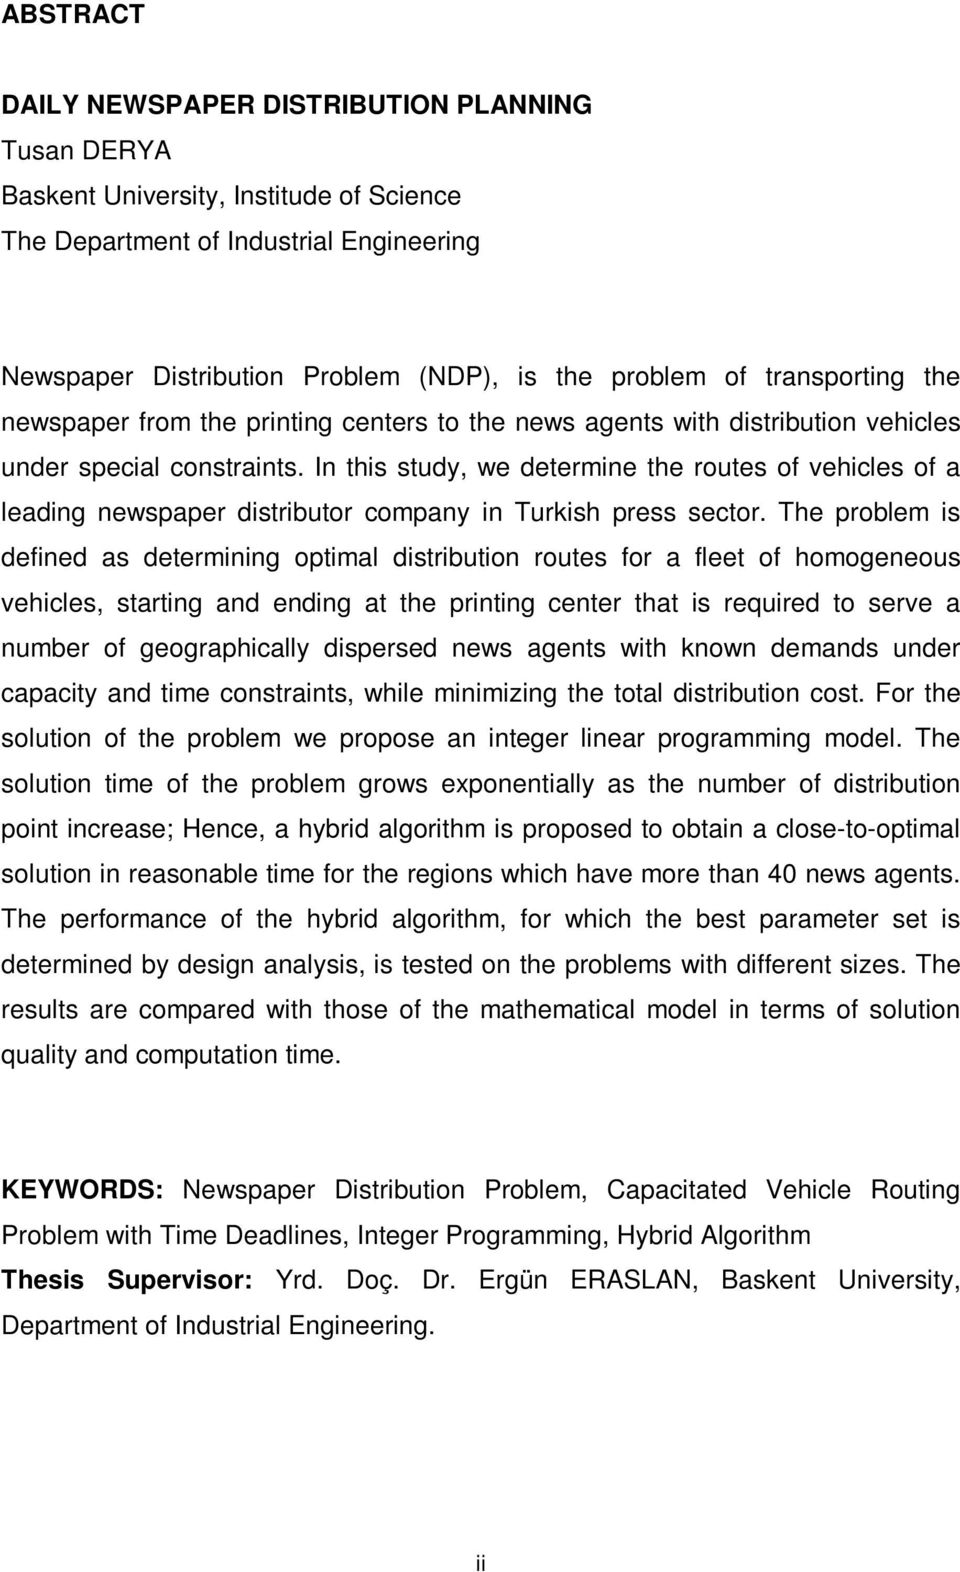 In this study, we determine the routes of vehicles of a leading newspaper distributor company in Turkish press sector.